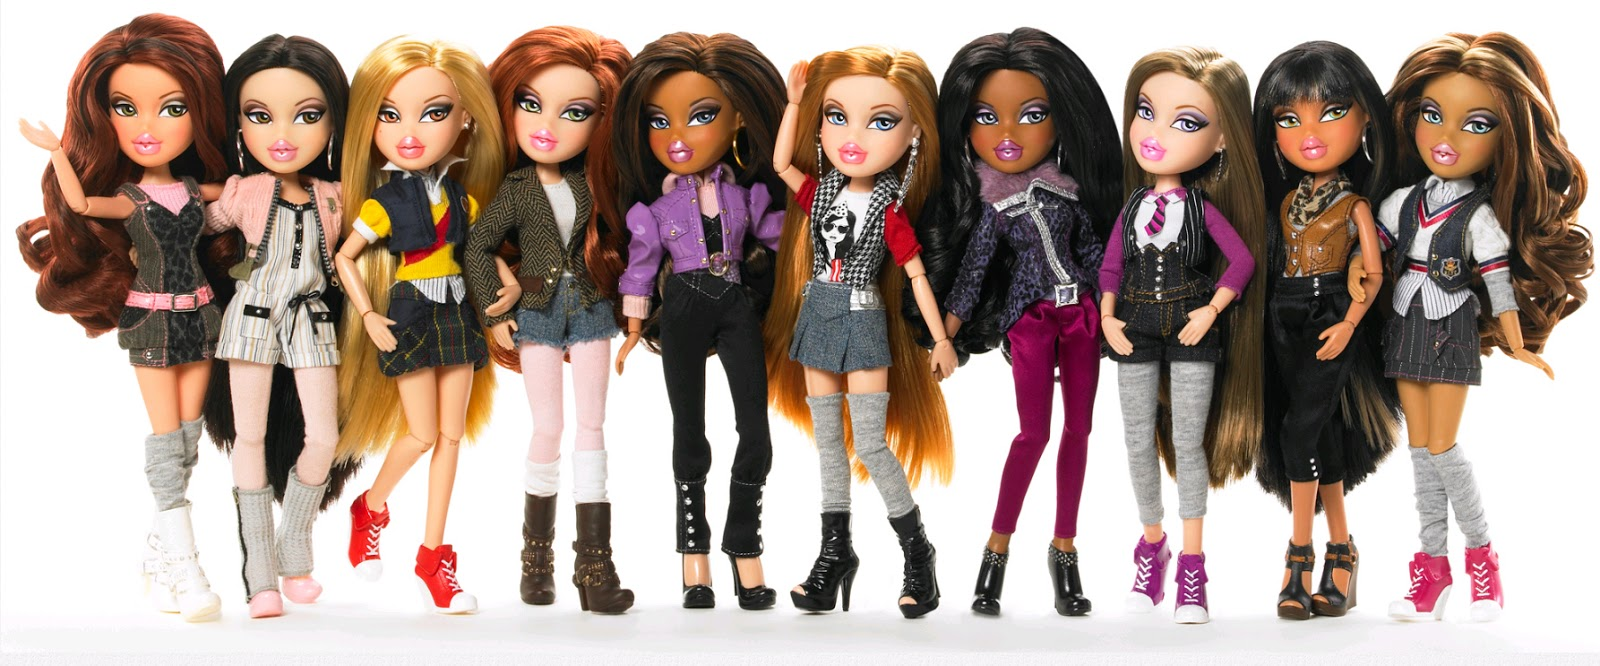 Uncategorized Bratz Girl monkfishs dolly ramble new bratz part 1 xpress it yasmin yasmin